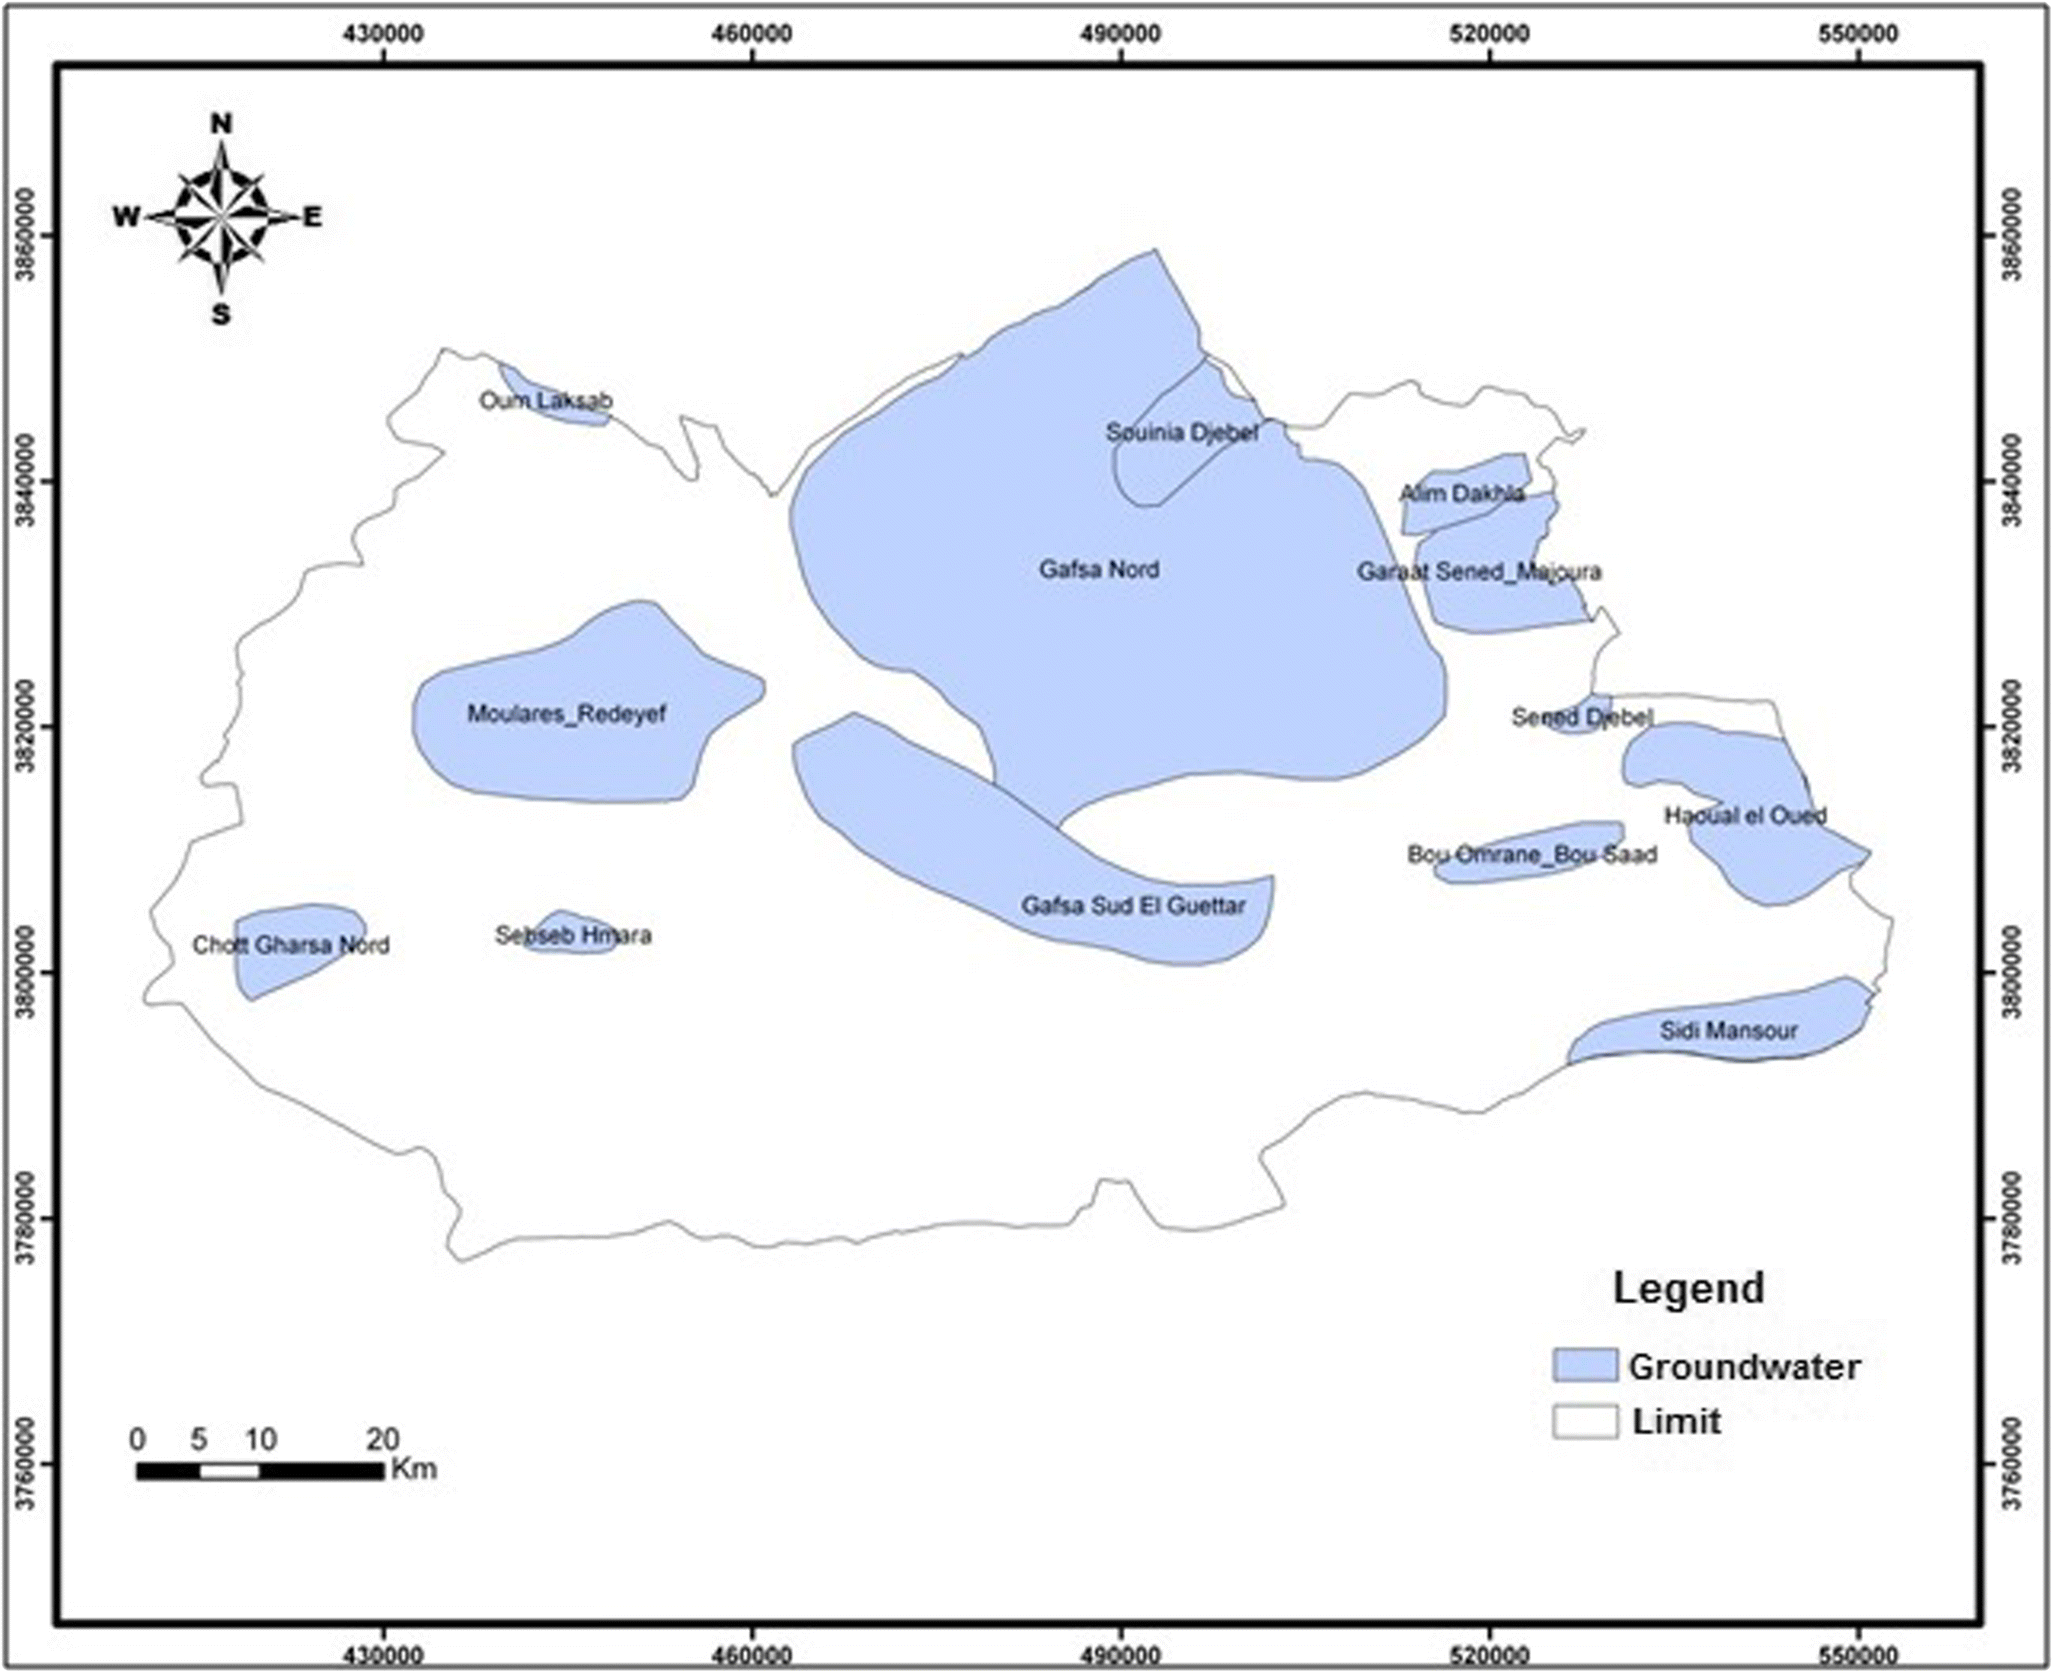 Inter-annual variability of rainfall under an arid climate: case of